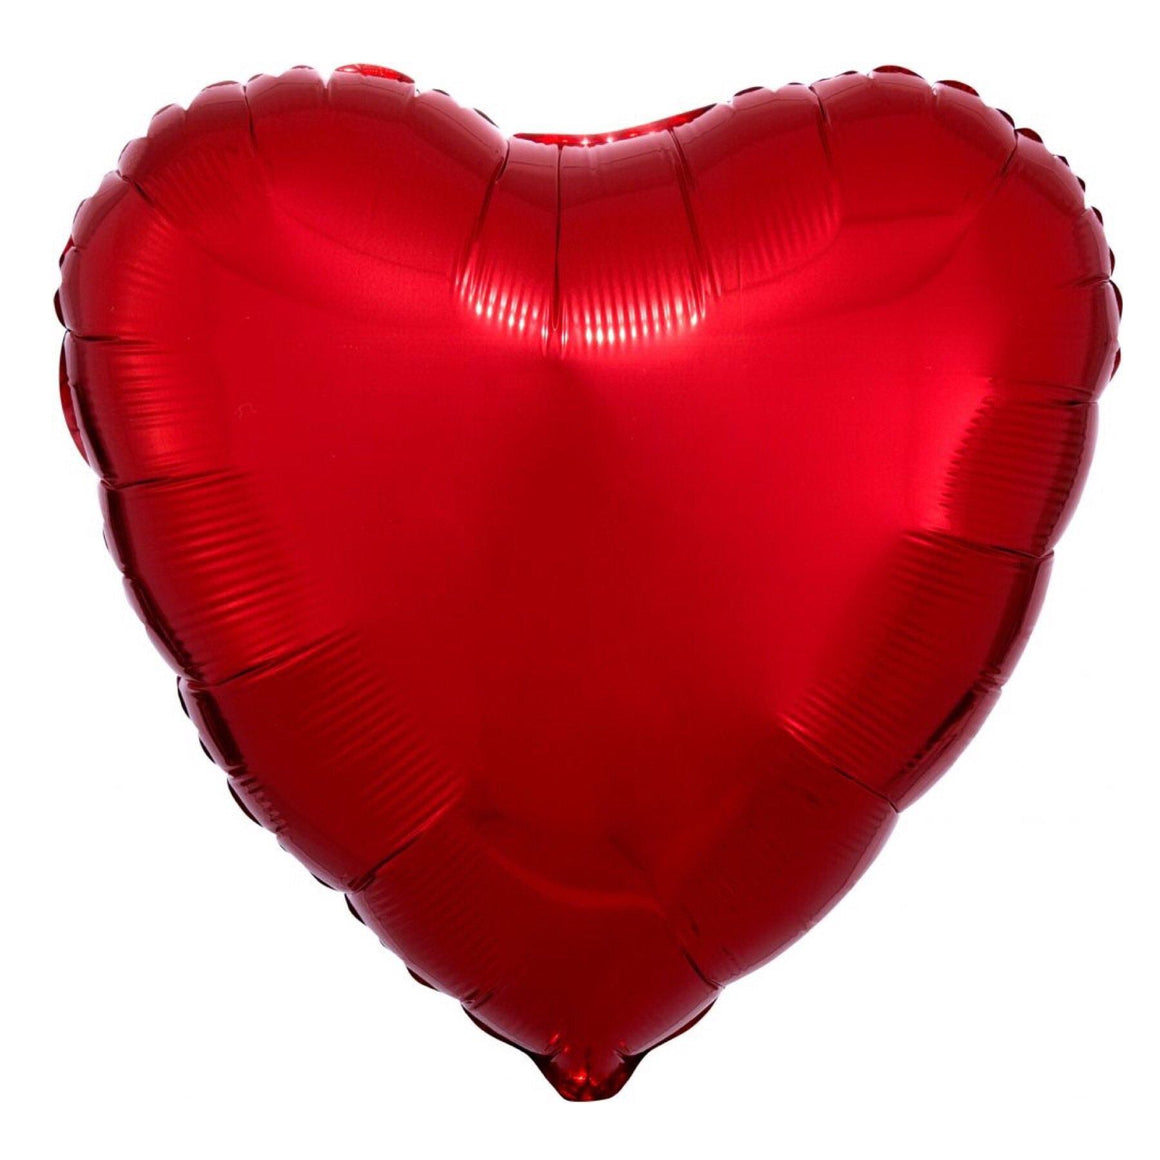 BALLOON BAR - HEART SHINY RED, Balloons, Anagram - Bon + Co. Party Studio